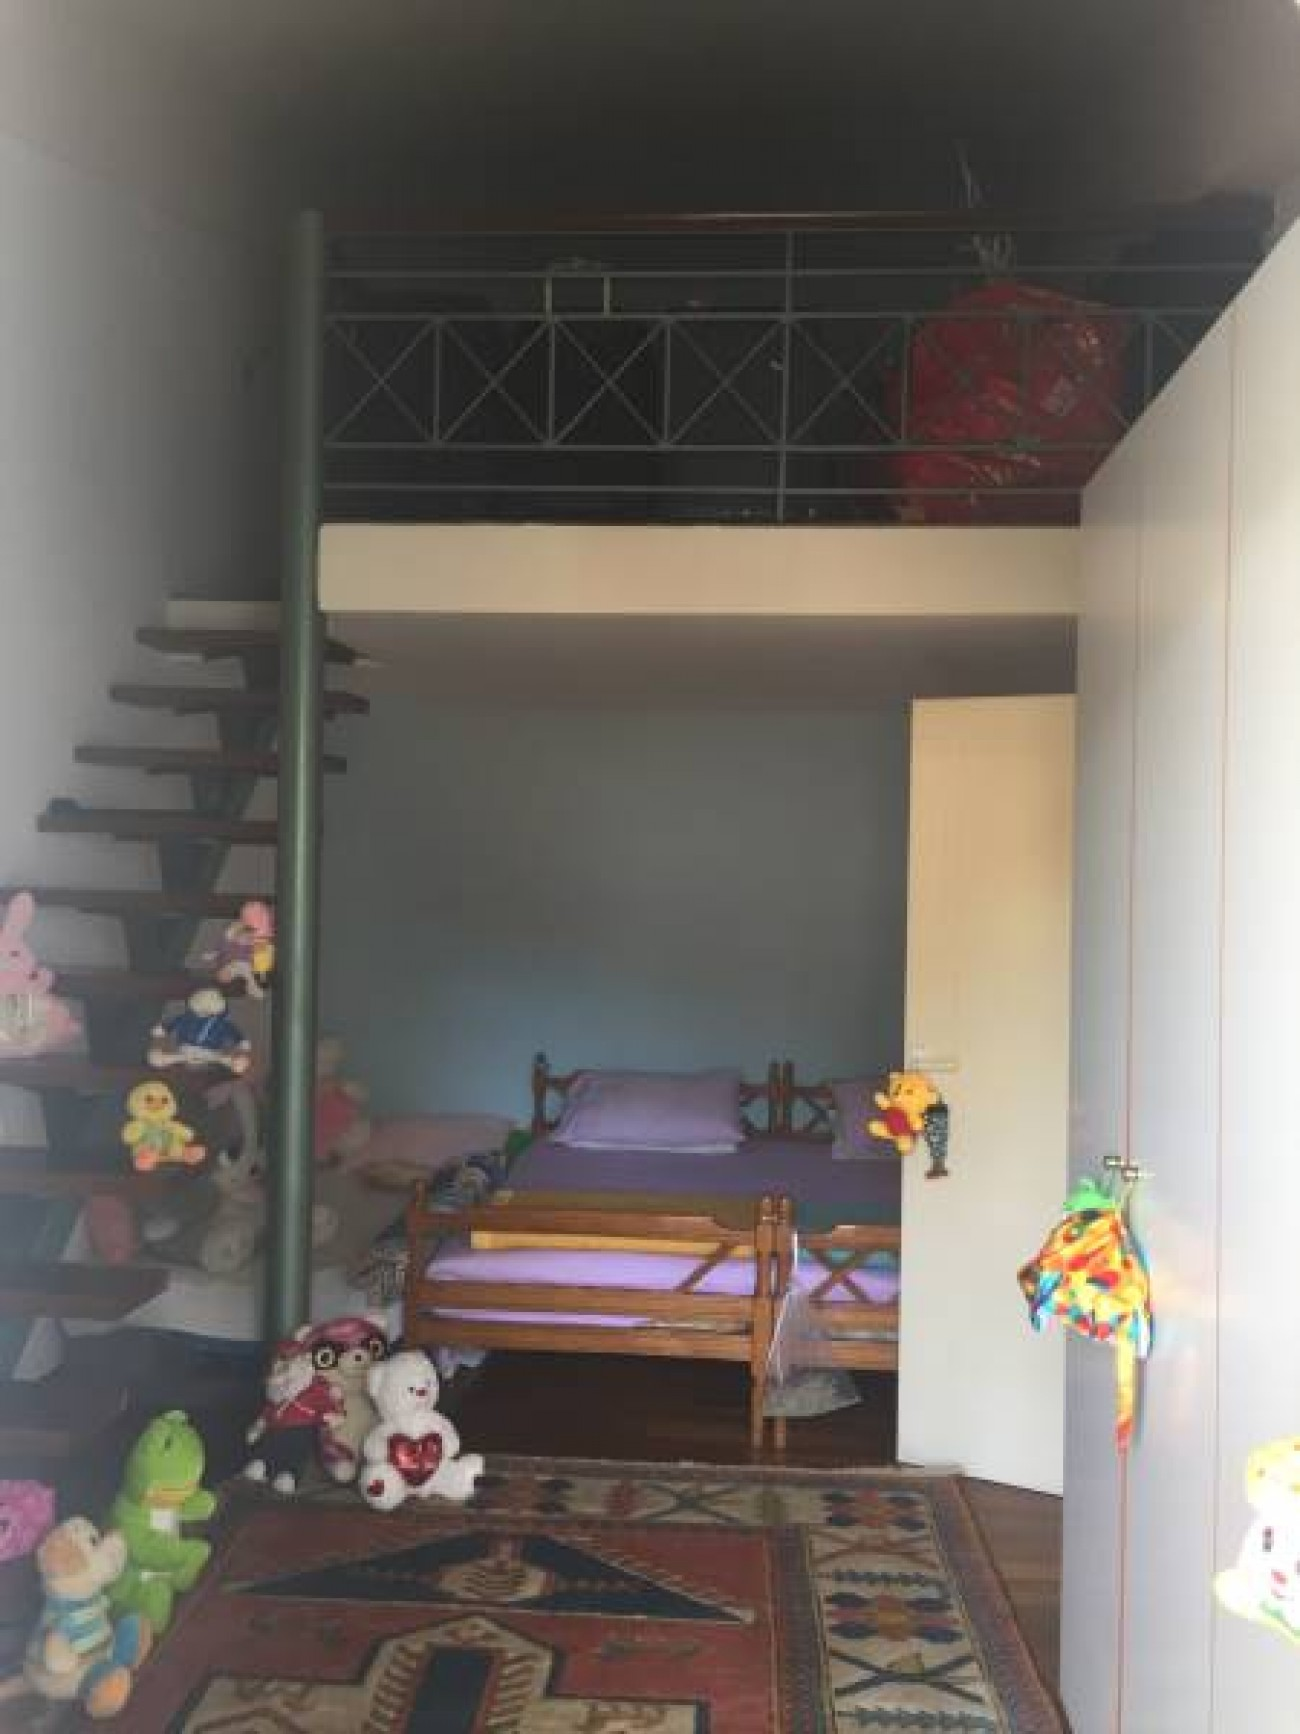 House for Sale in Northern & Eastern Suburbs, Prefecture of Attica